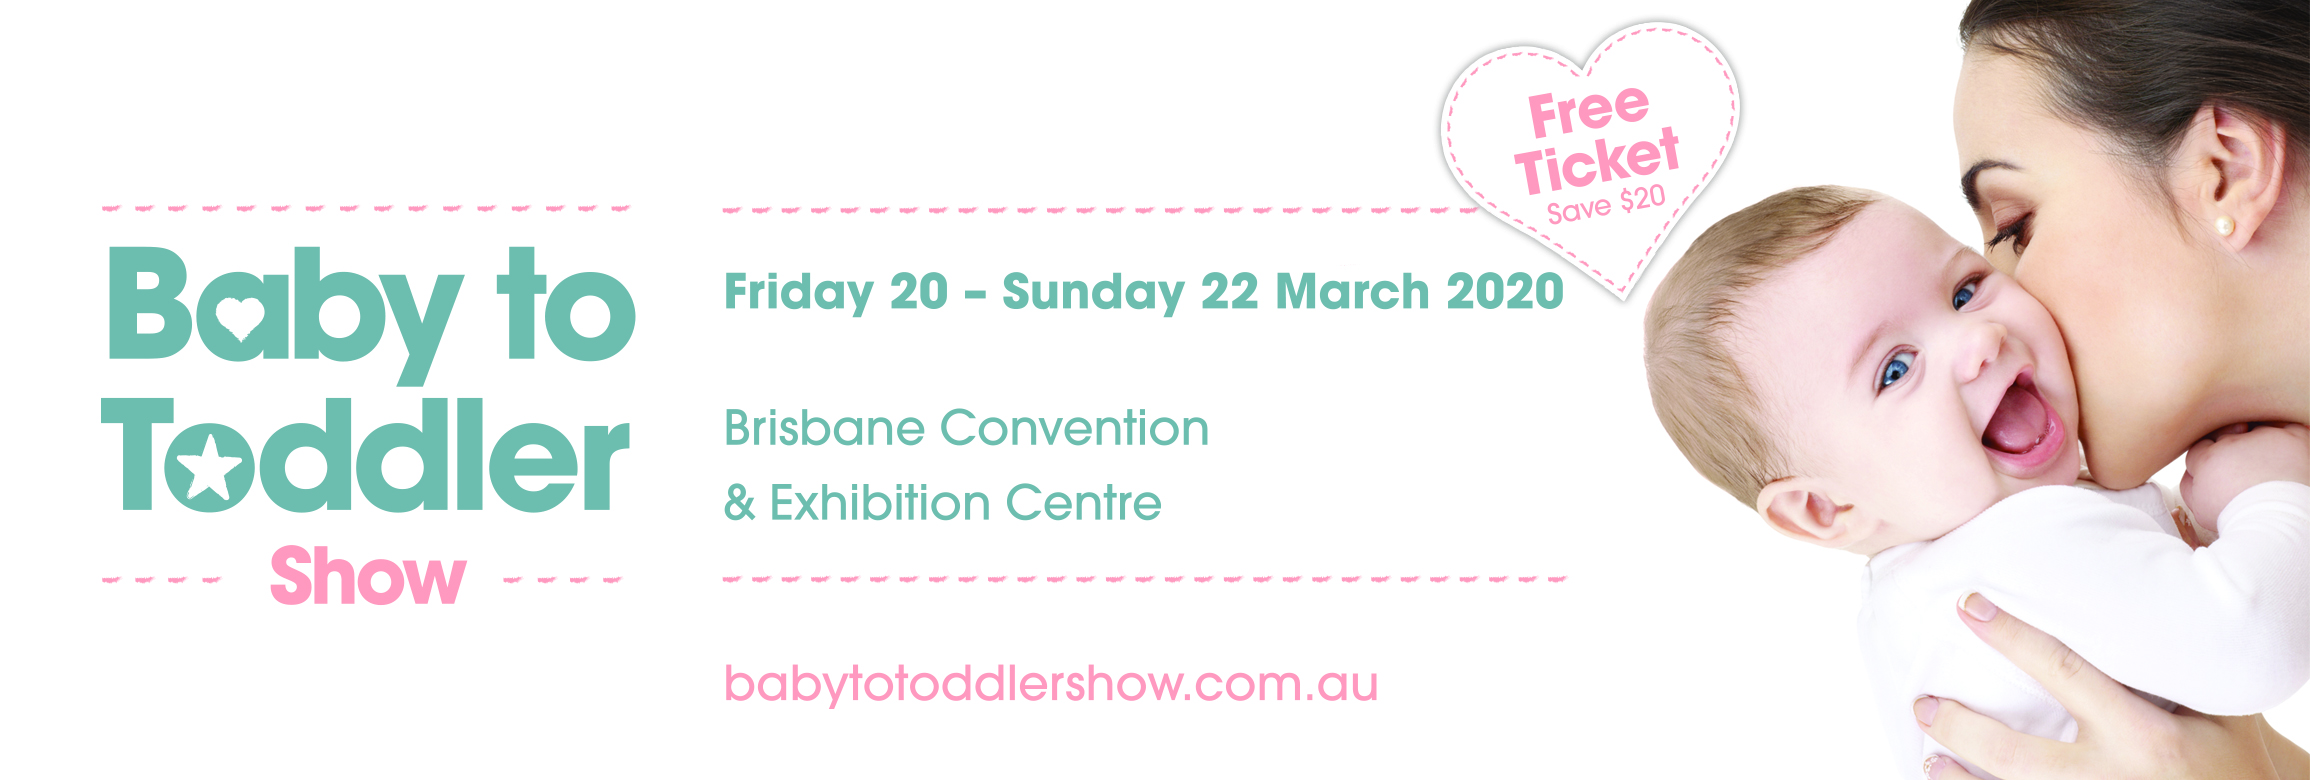 Baby to Toddler Show Brisbane